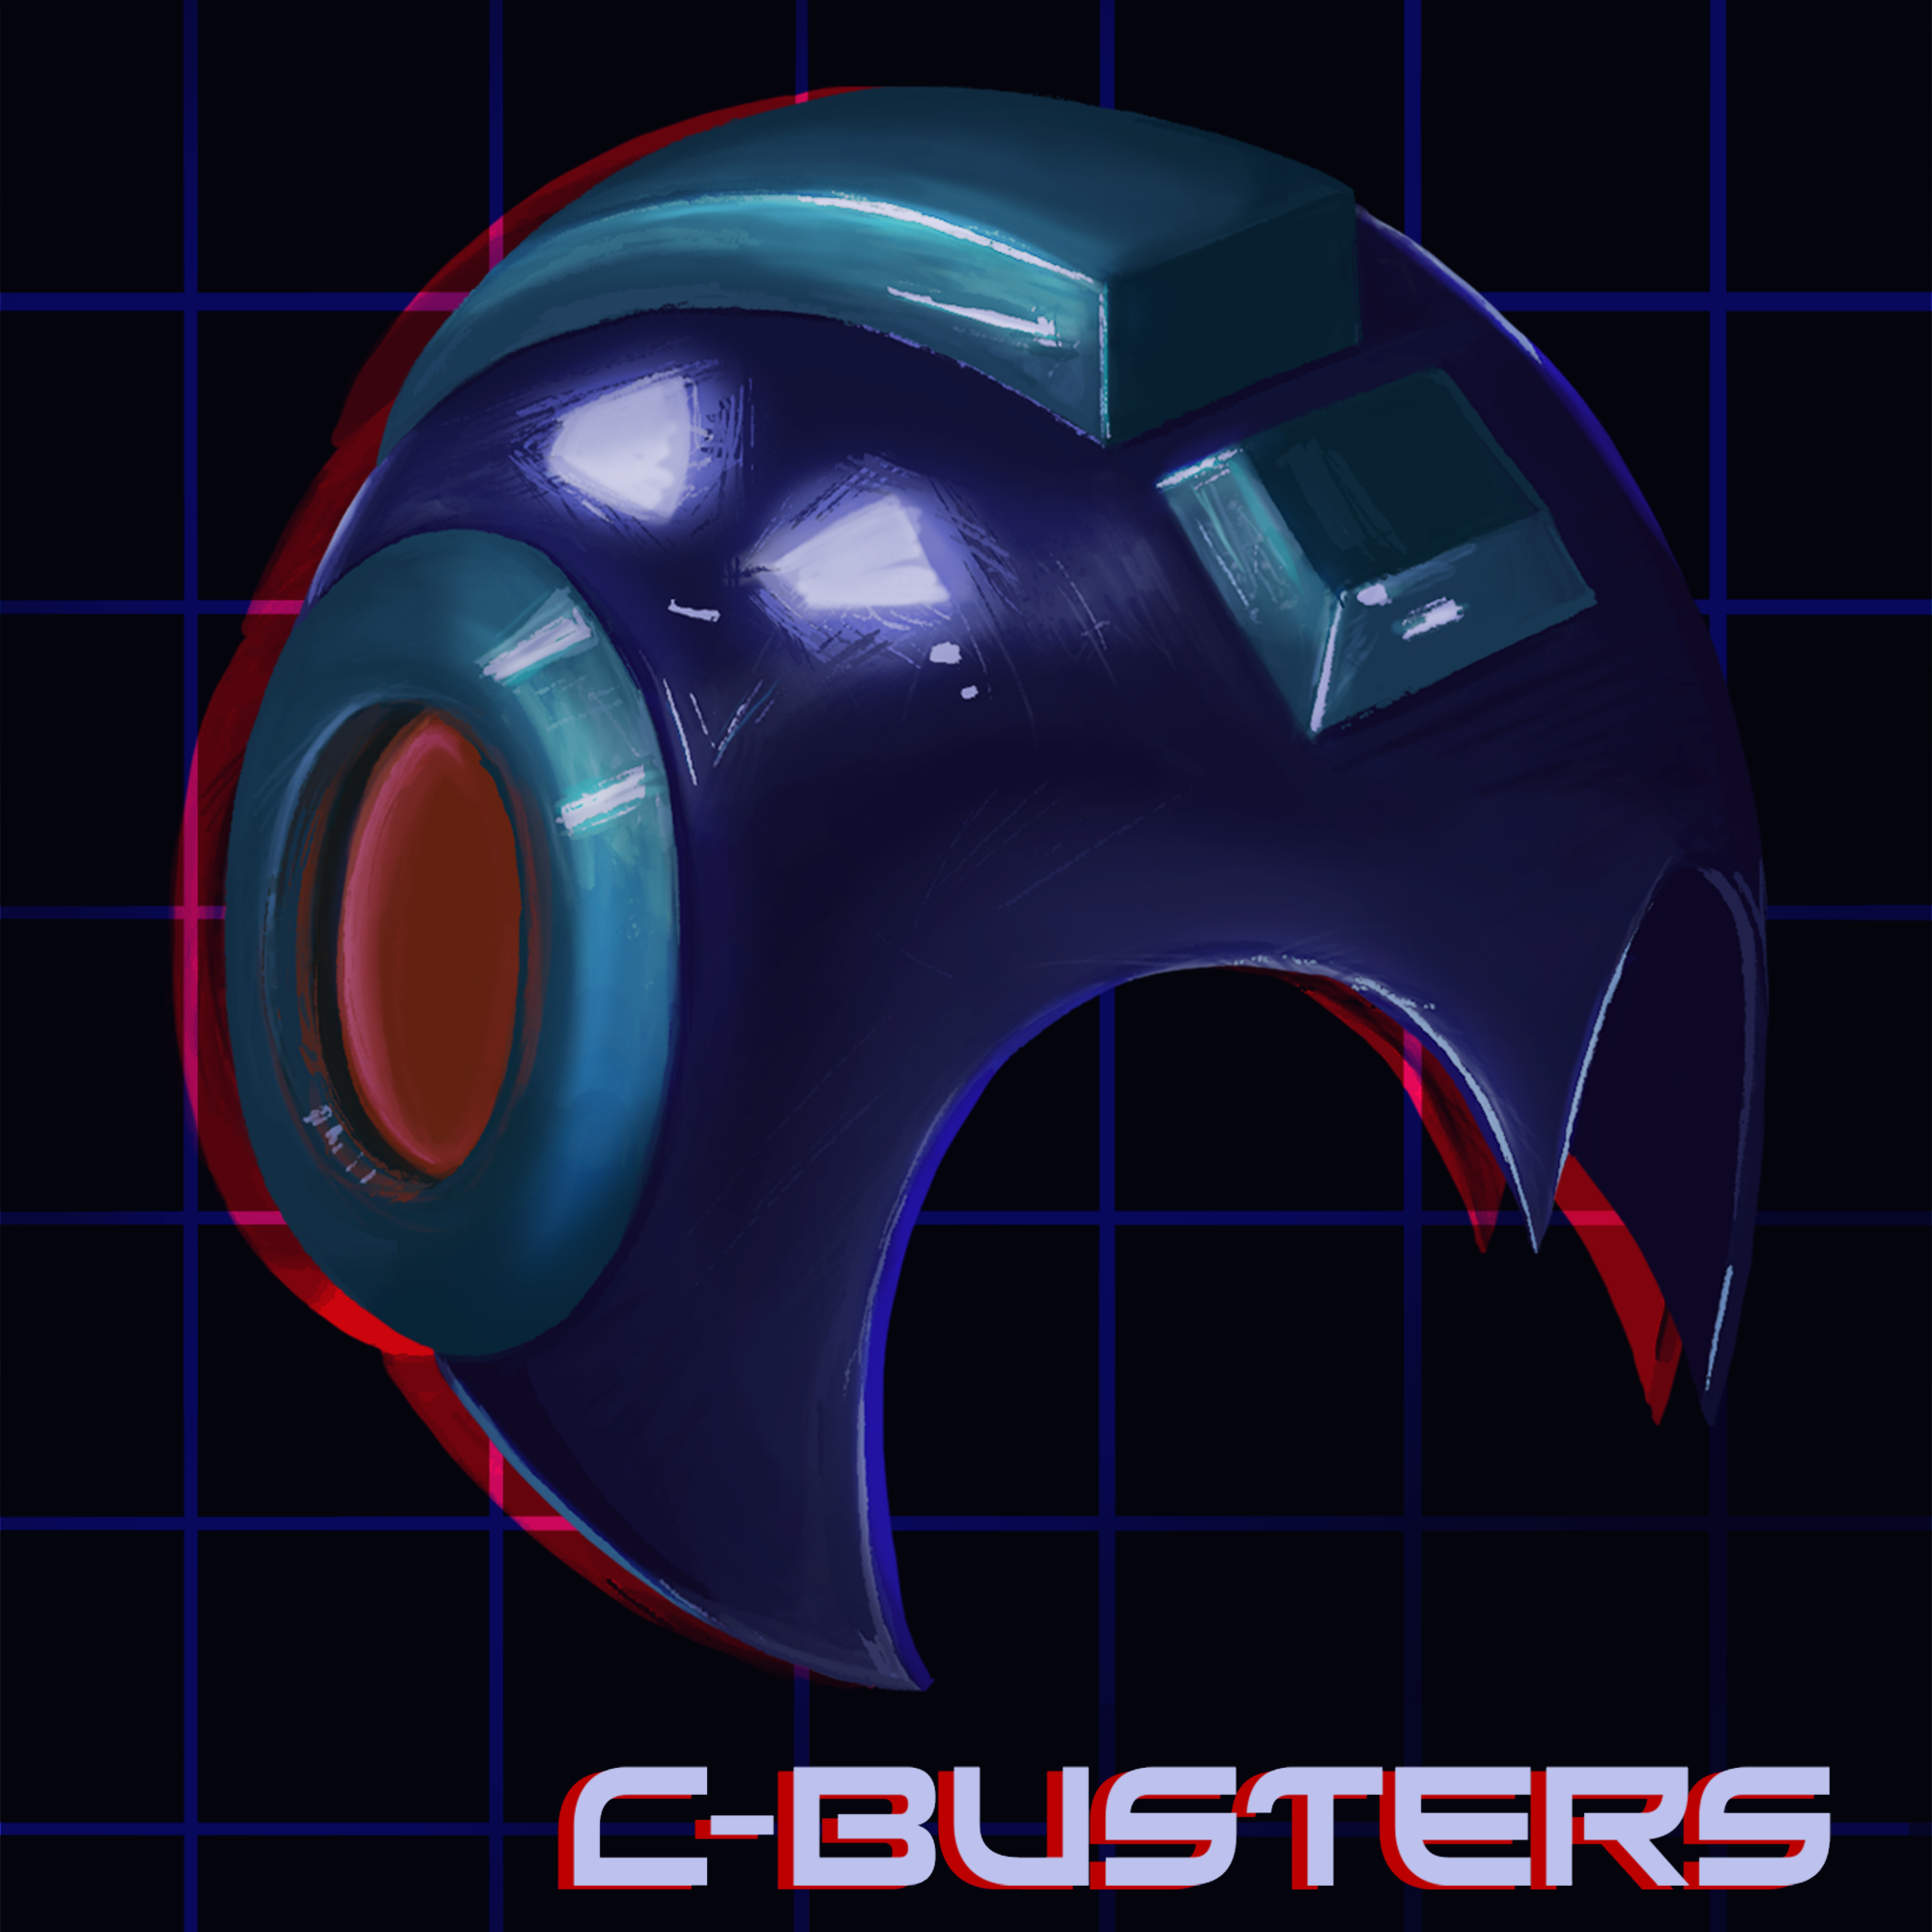 C-Busters